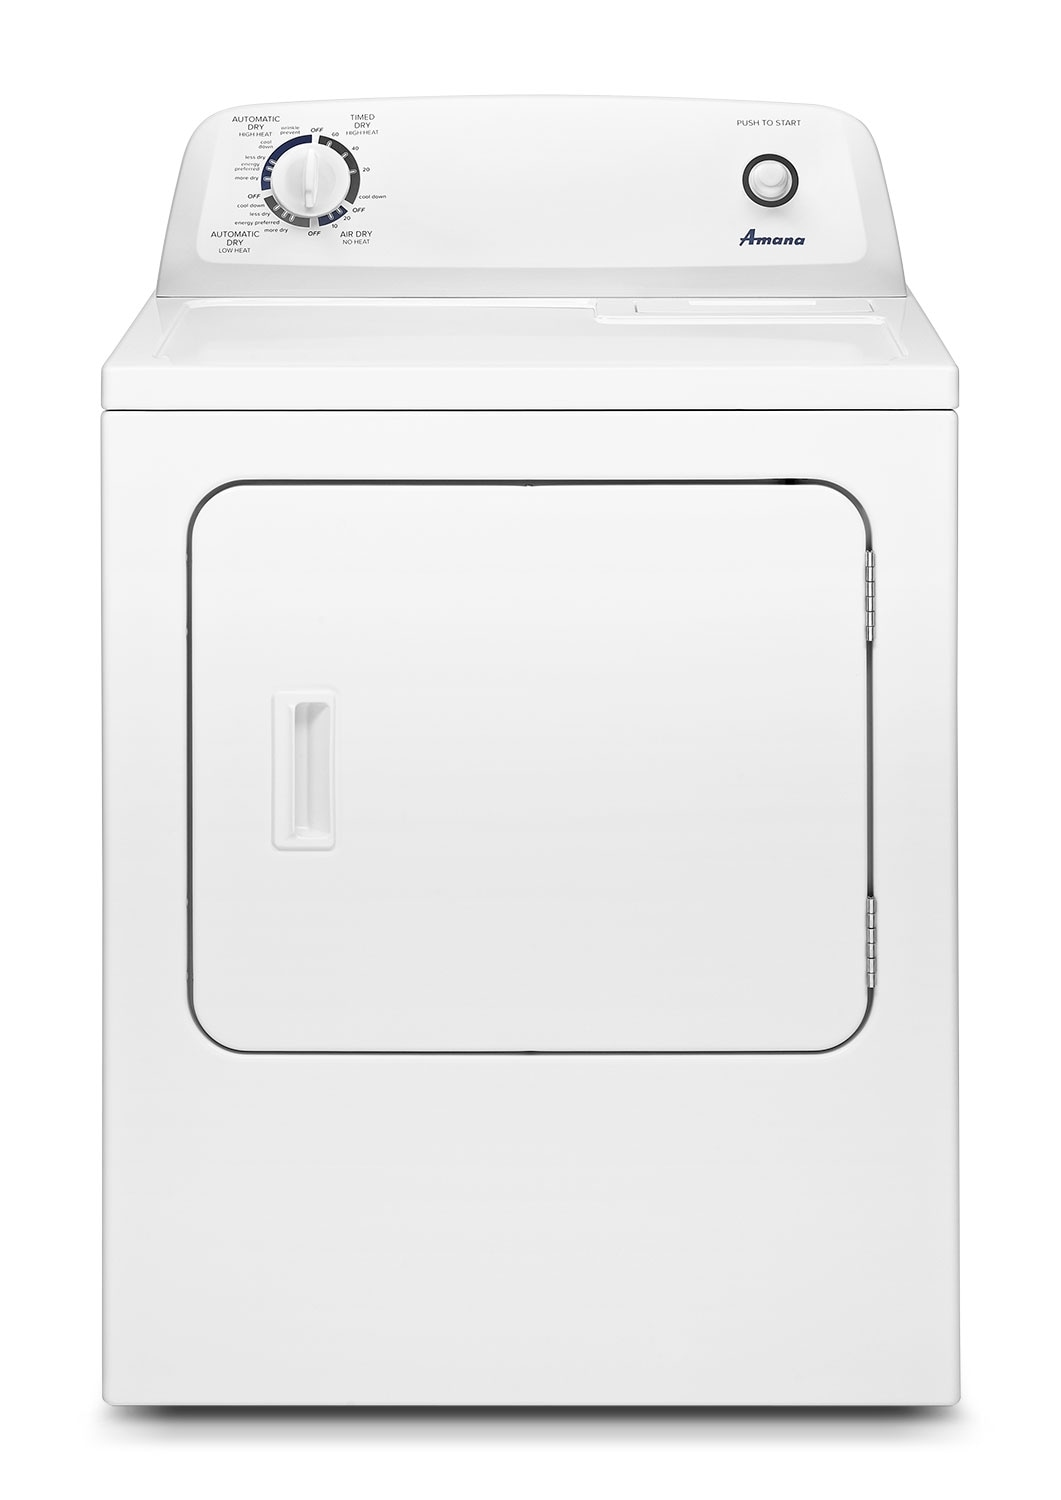 Washers and Dryers - Amana White Electric Dryer (6.5 Cu. Ft.) - YNED4655EW